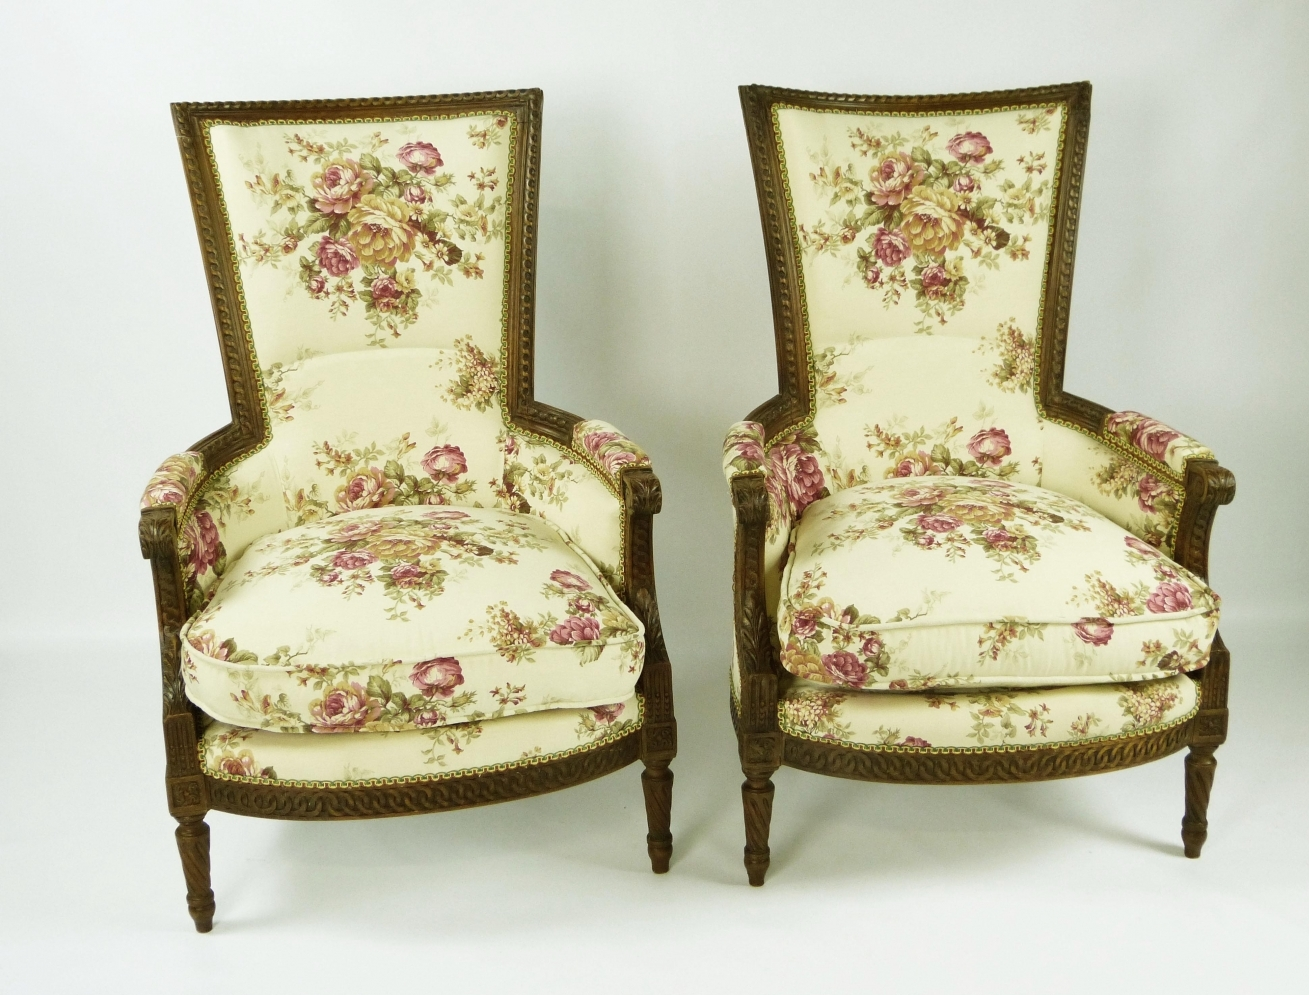 Louis xvi period armchairs trendfirst for Sillones antiguos